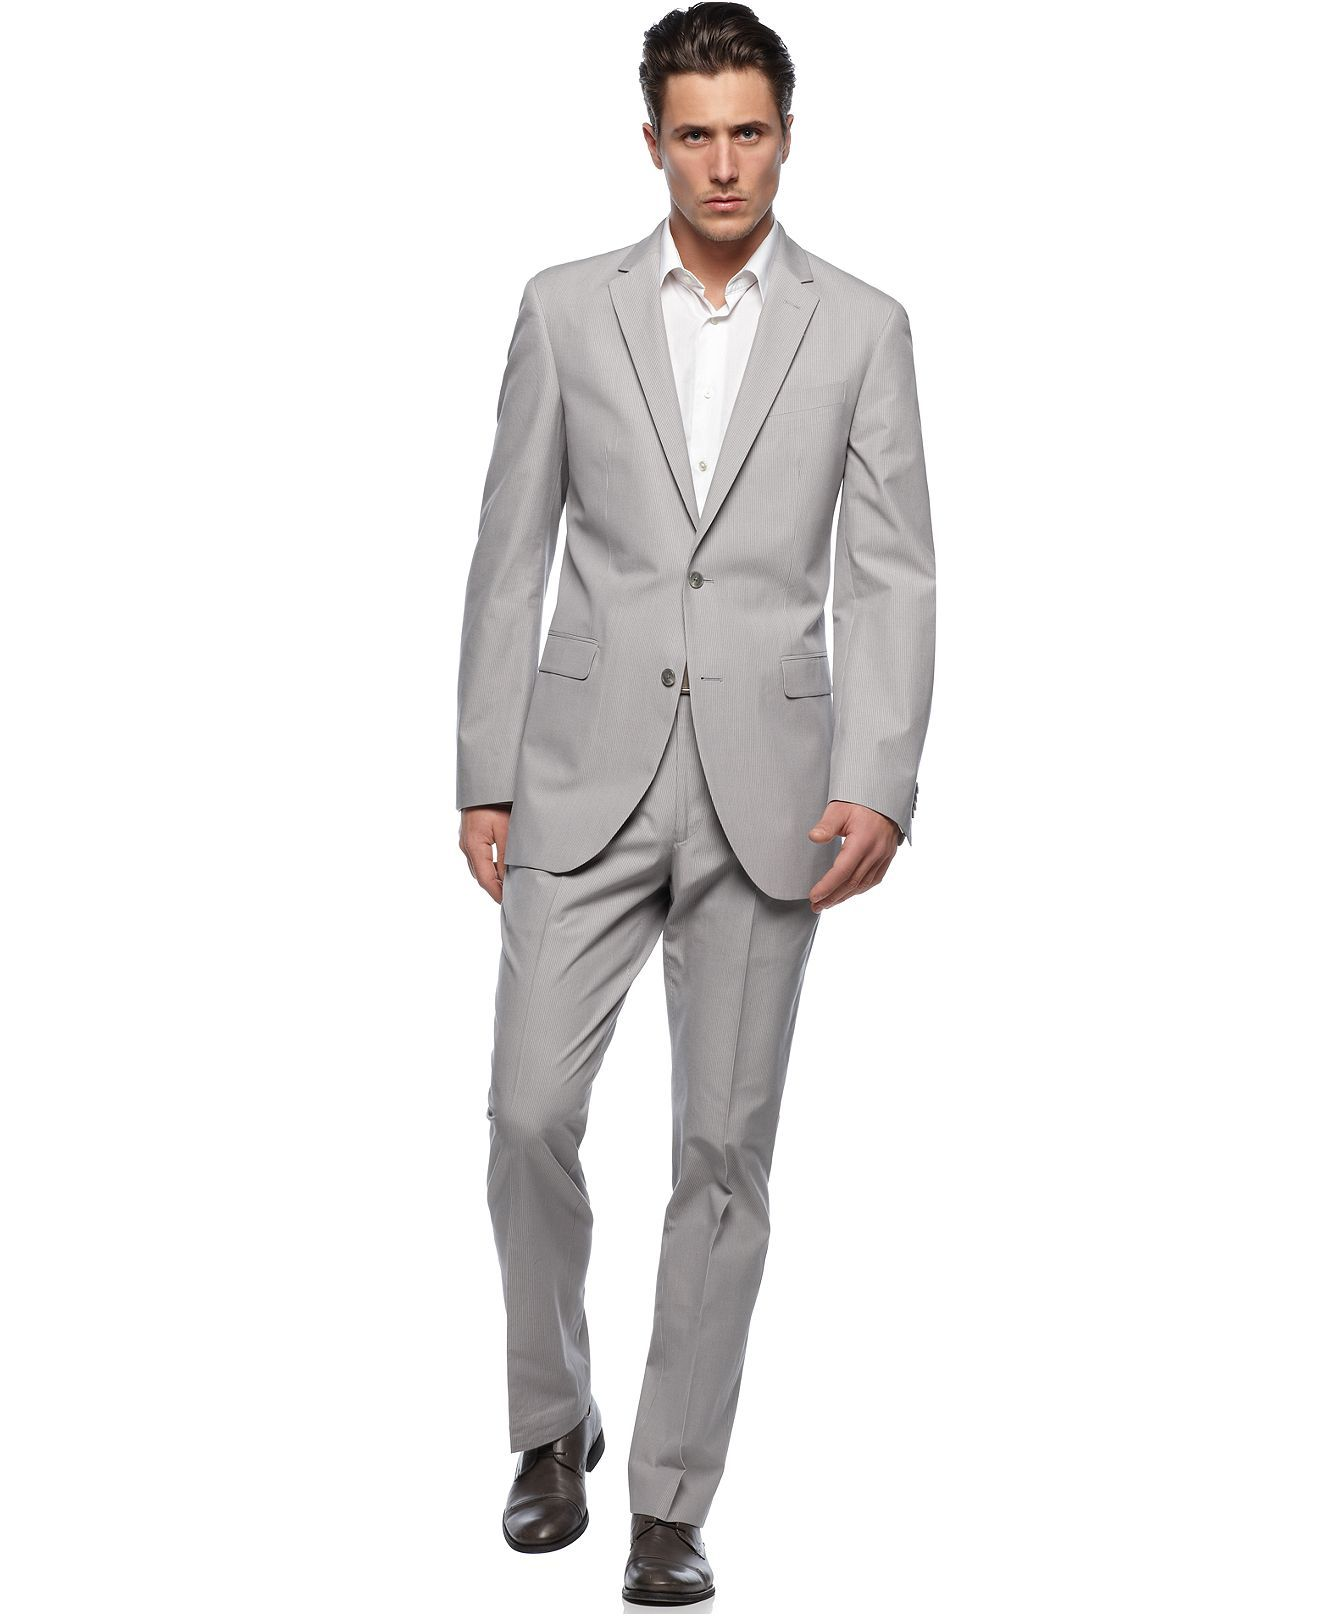 Kenneth Cole Grey Suit Love The Grey Goes With Black Or Brown Shoes And Just About Any Color Shirt T Mens Dress Outfits Slim Fit Blazers Mens Fashion Suits [ 1616 x 1320 Pixel ]